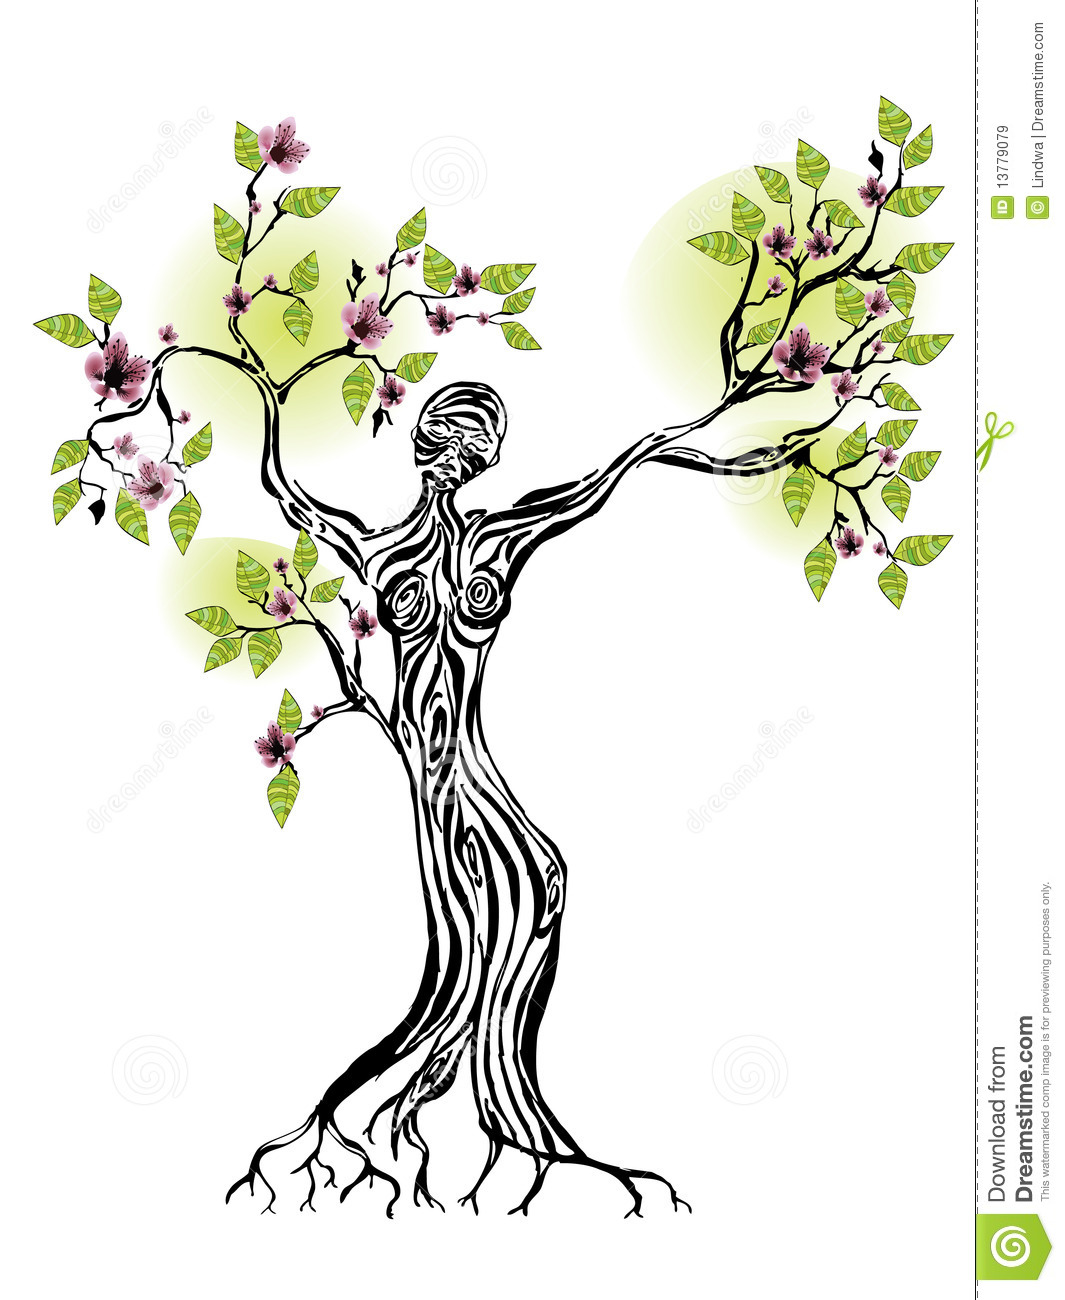 Woman clipart tree Tree silhouette life With Images